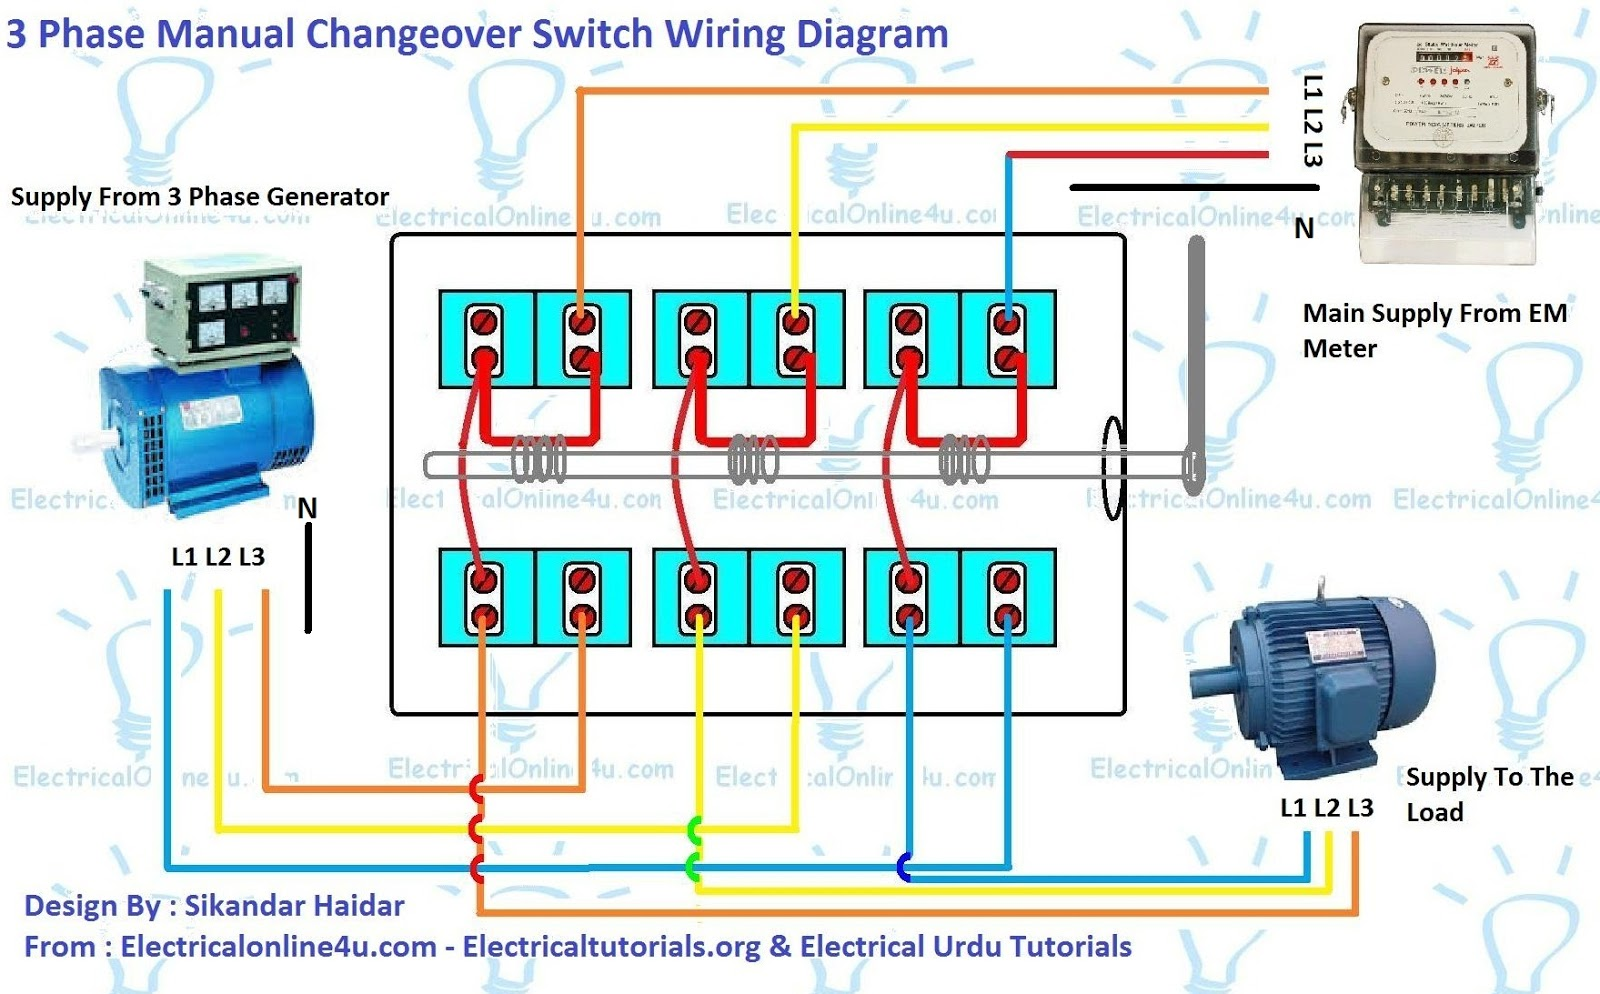 3 phase manual changeover switch wiring diagram for yamaha g9 wiring diagram 1990 yamaha golf [ 1600 x 994 Pixel ]